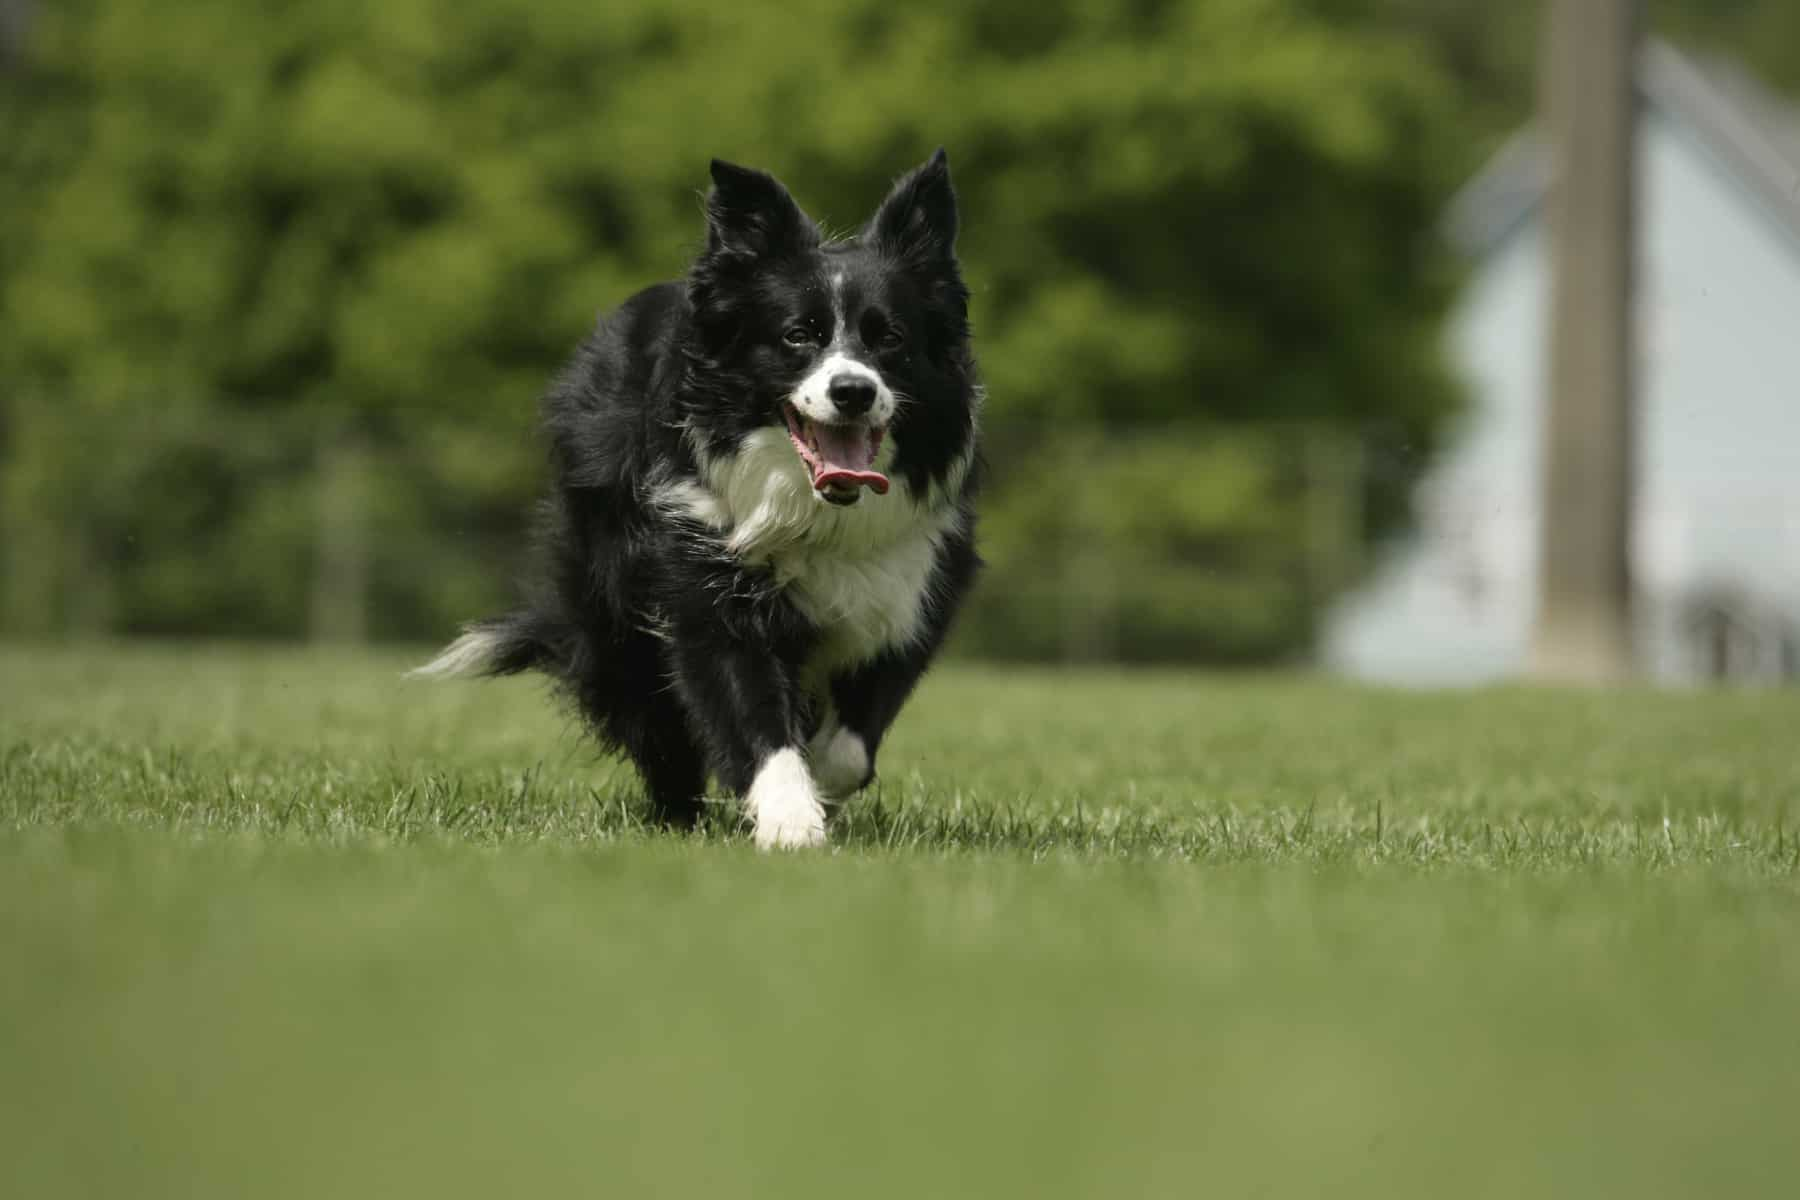 a miniature Border Collie, running on the grass